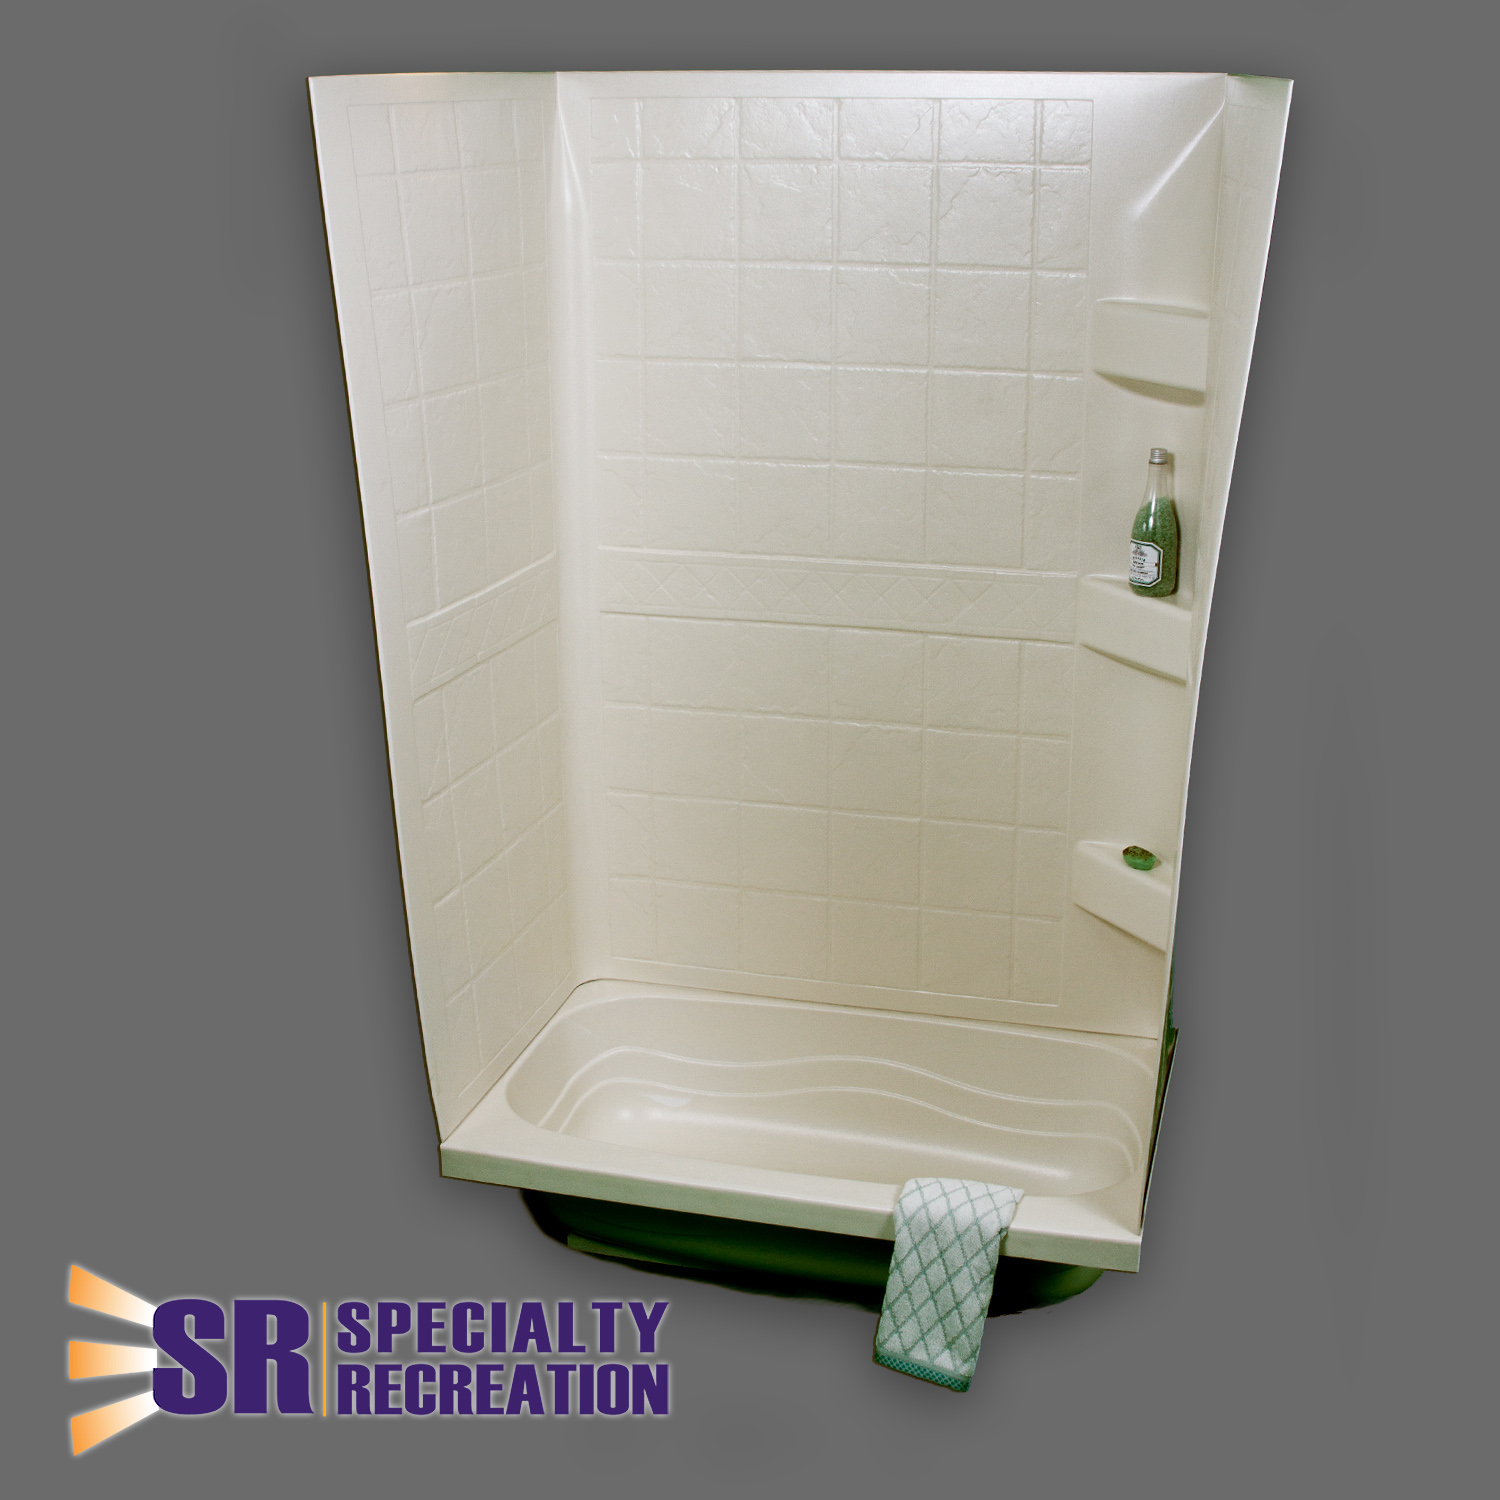 TW2438P Specialty Recreation Shower Surround 38 Inch Length x 24 ...